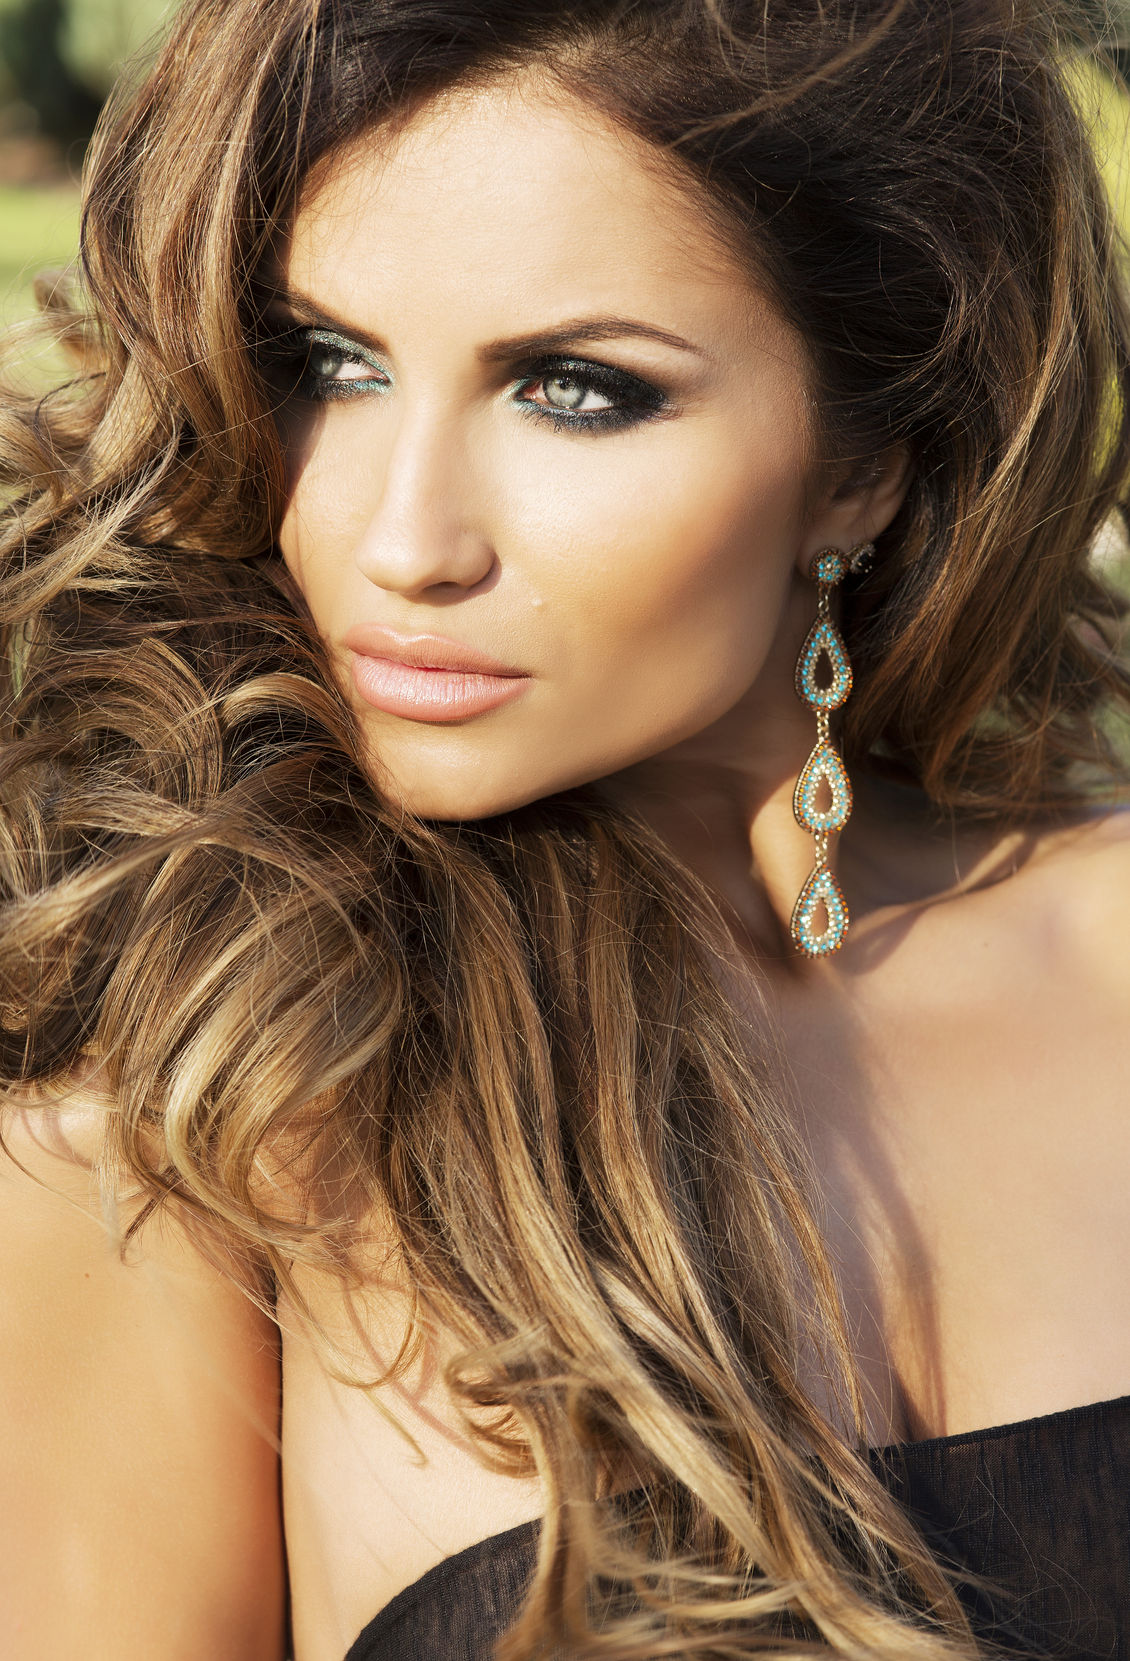 24254767 - sunny portrait of beautiful woman with long curly hair and perfect makeup.